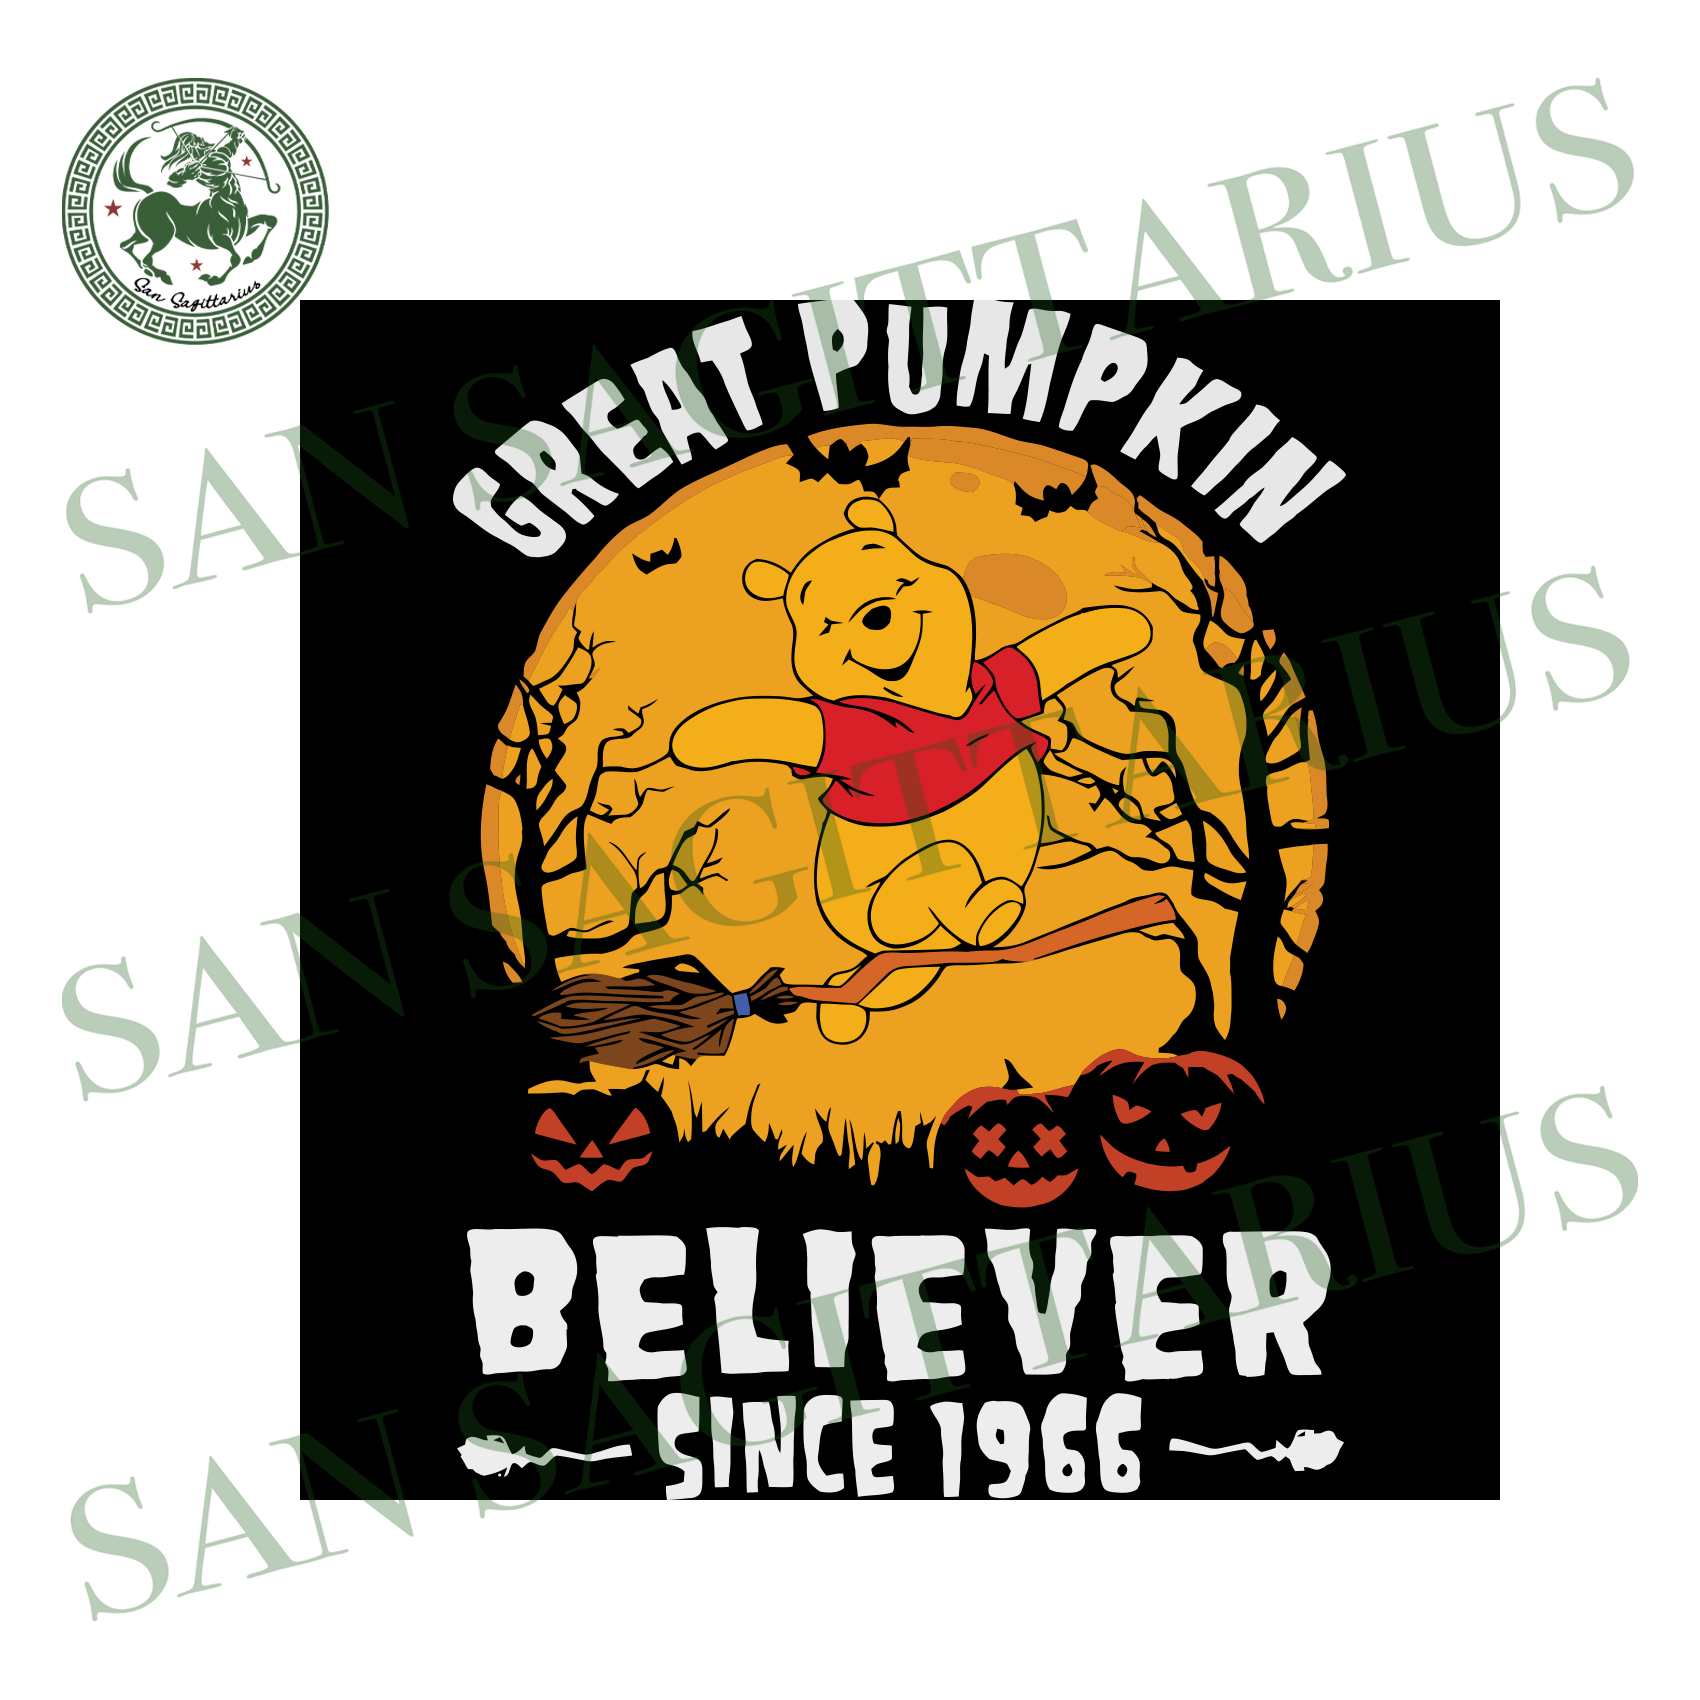 Cute Bear Great Pumpkin Believer Since 1966, Halloween Svg, Happy Halloween, Halloween Gift, Halloween Day, Pumpkin Svg , Pooh Bear Svg, Cute Pooh, Bear Svg, Cute Bear, Funny Bear, Cartoon Sv